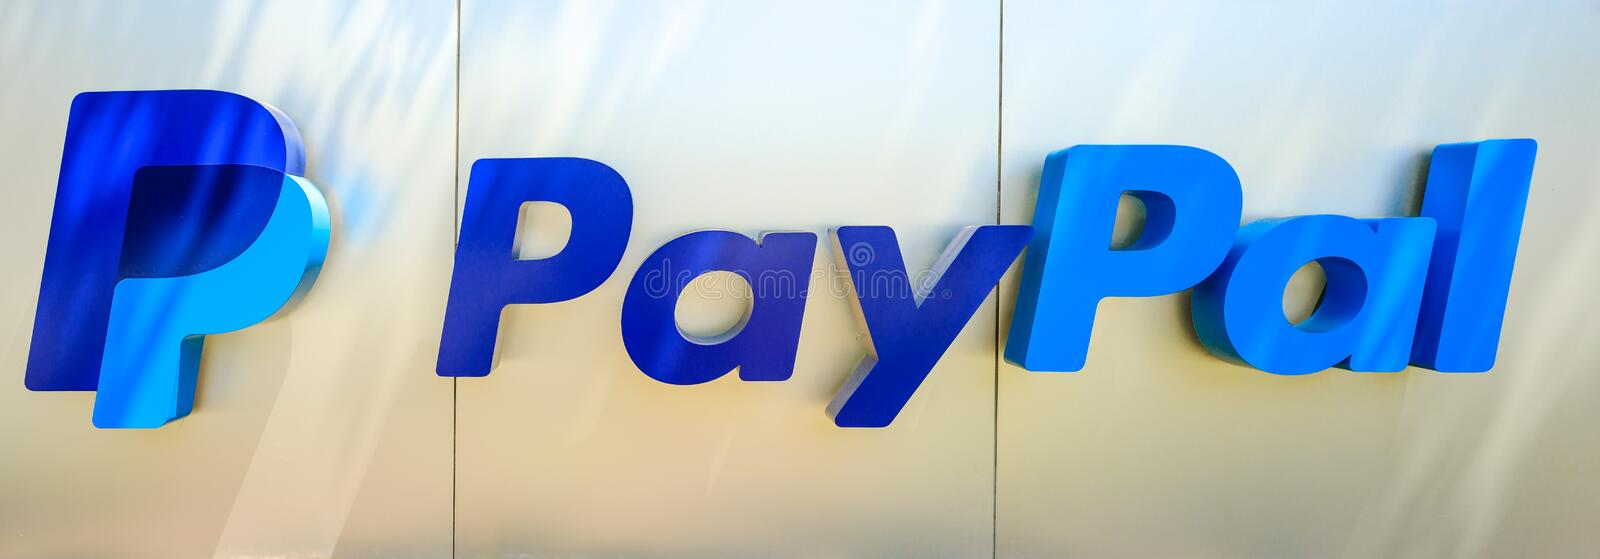 Paypal logo isolated. San Jose, California, United States - August 12, 2018: Paypal logo isolated from sign at Paypal Headquarters. Paypal is a corporation stock images